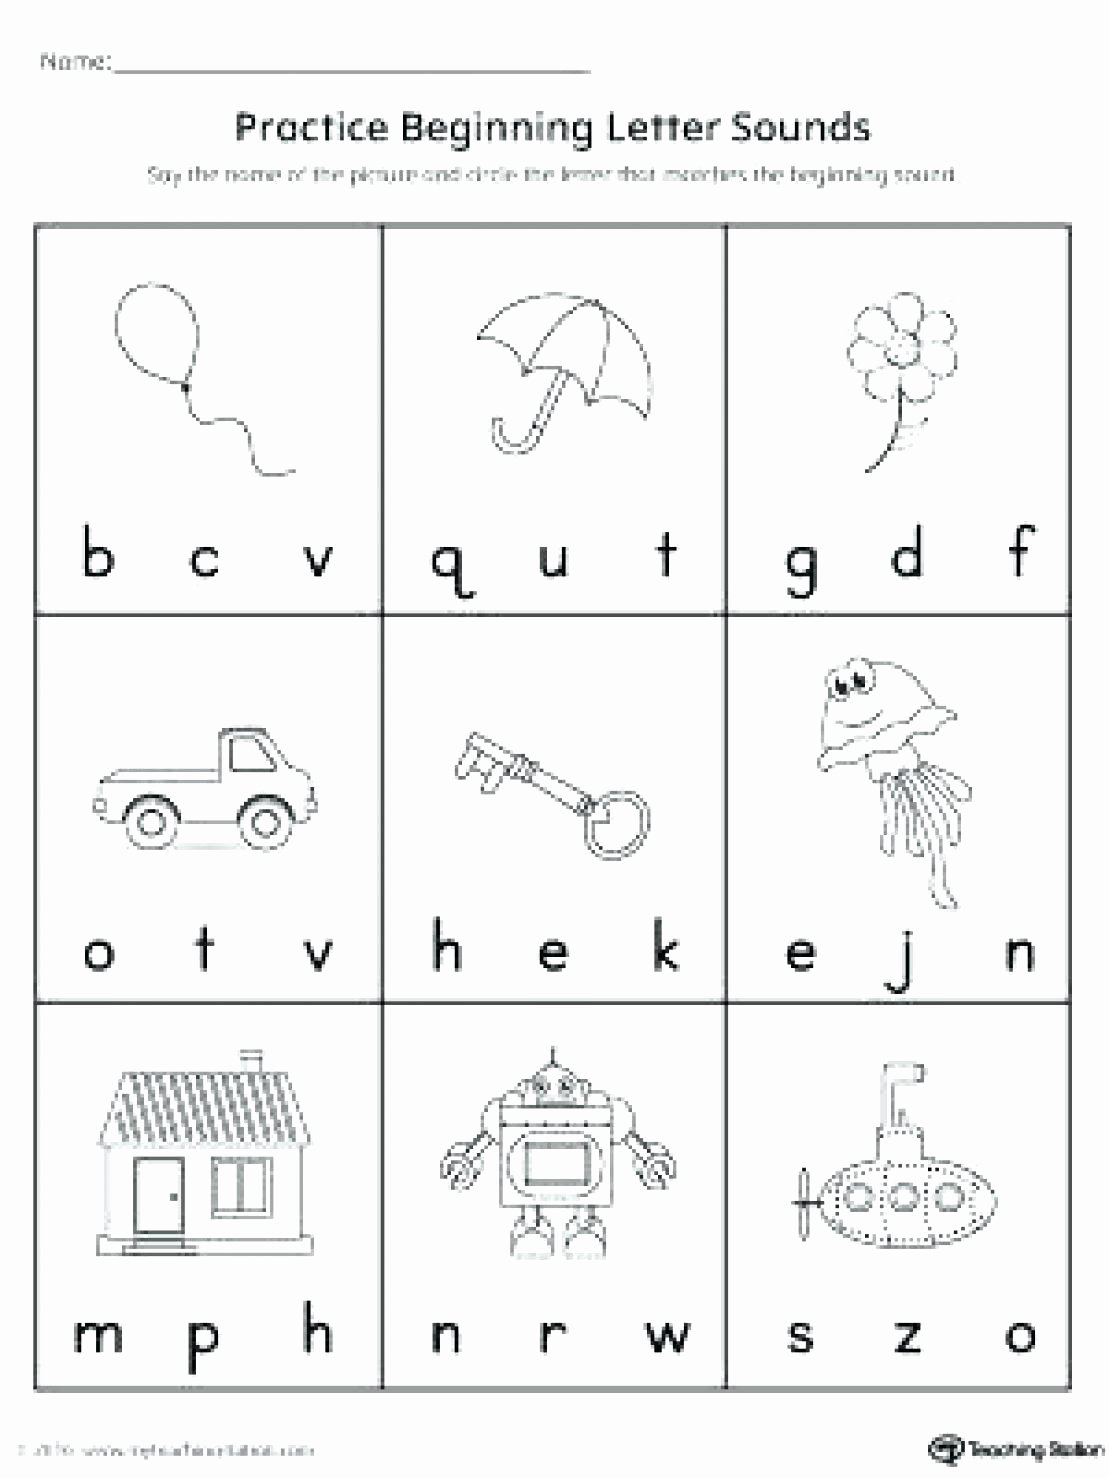 Letter A sound Worksheets for Preschoolers Fresh Letter sound Worksheets for Free Download Letter sound